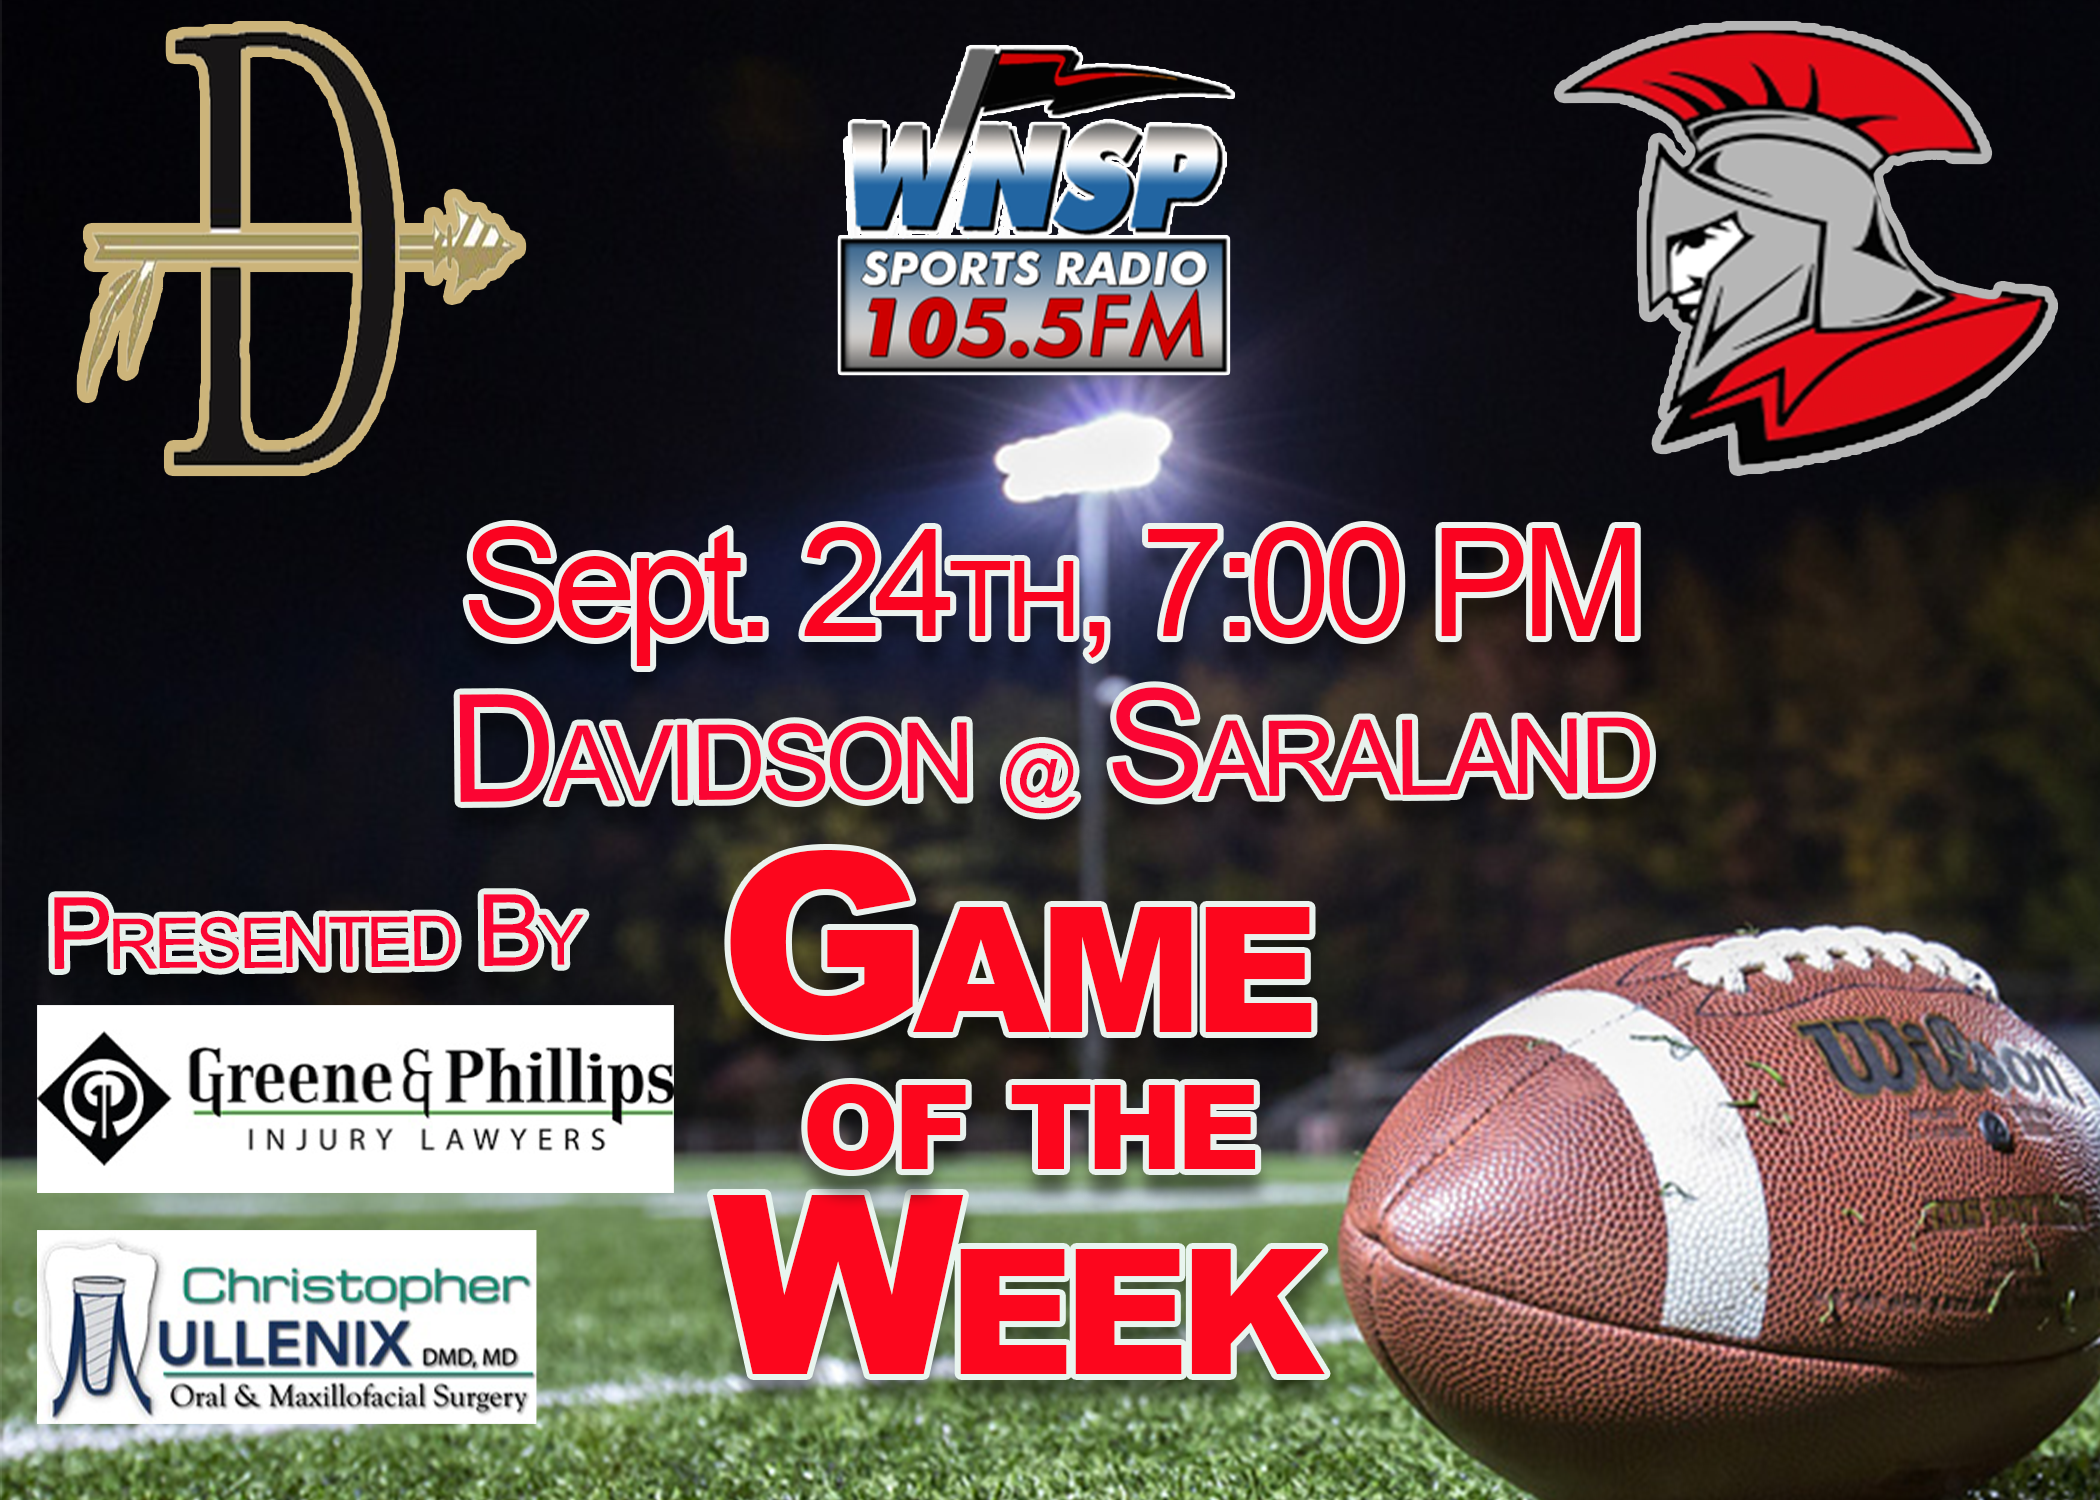 Davidson @ Saraland for WNSP's Game of the Week